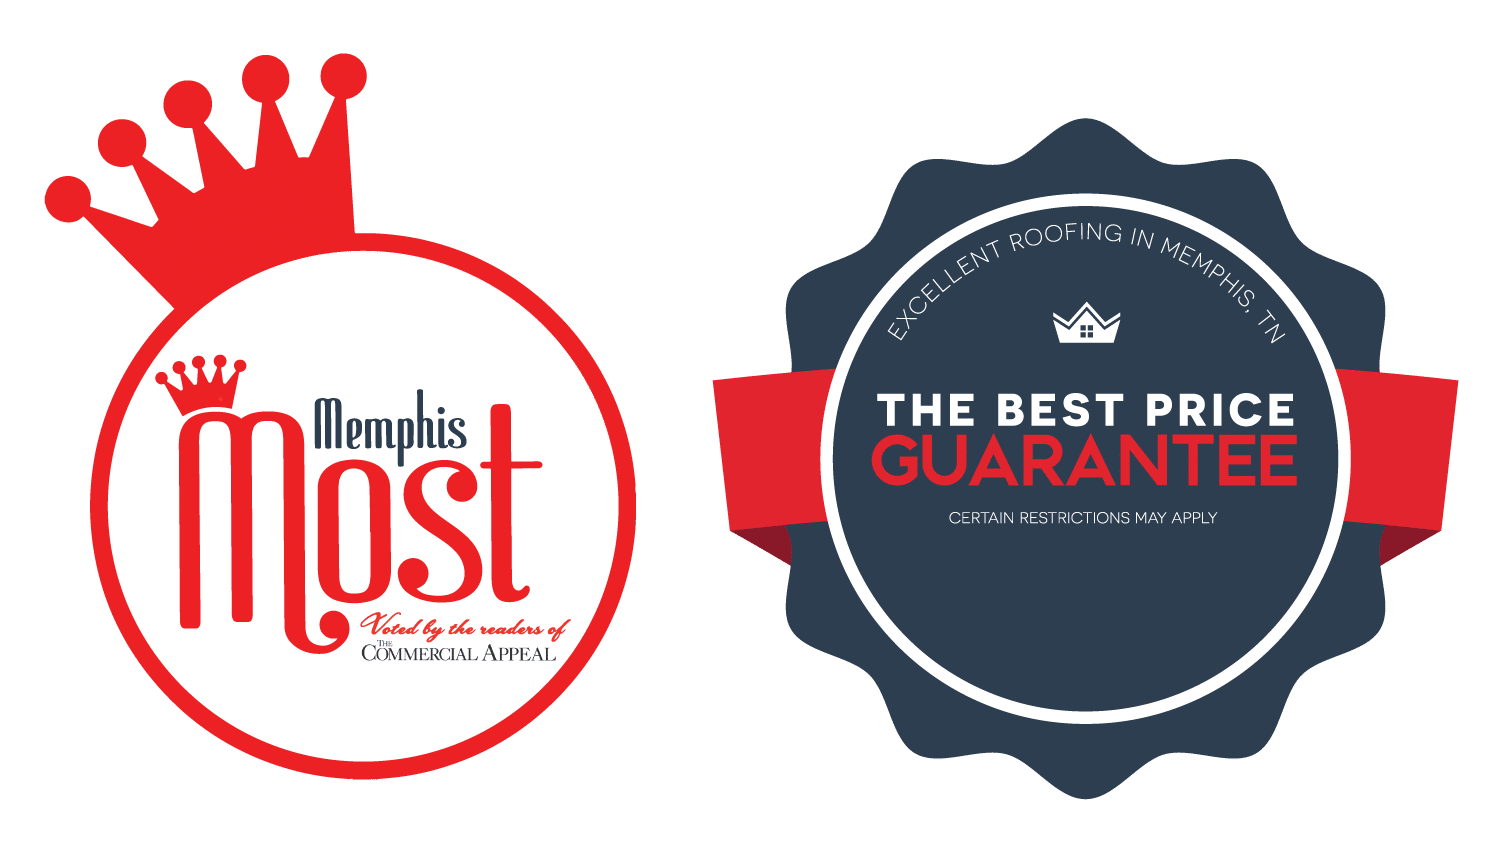 memphis most award winning roofer roofing best price guarantee